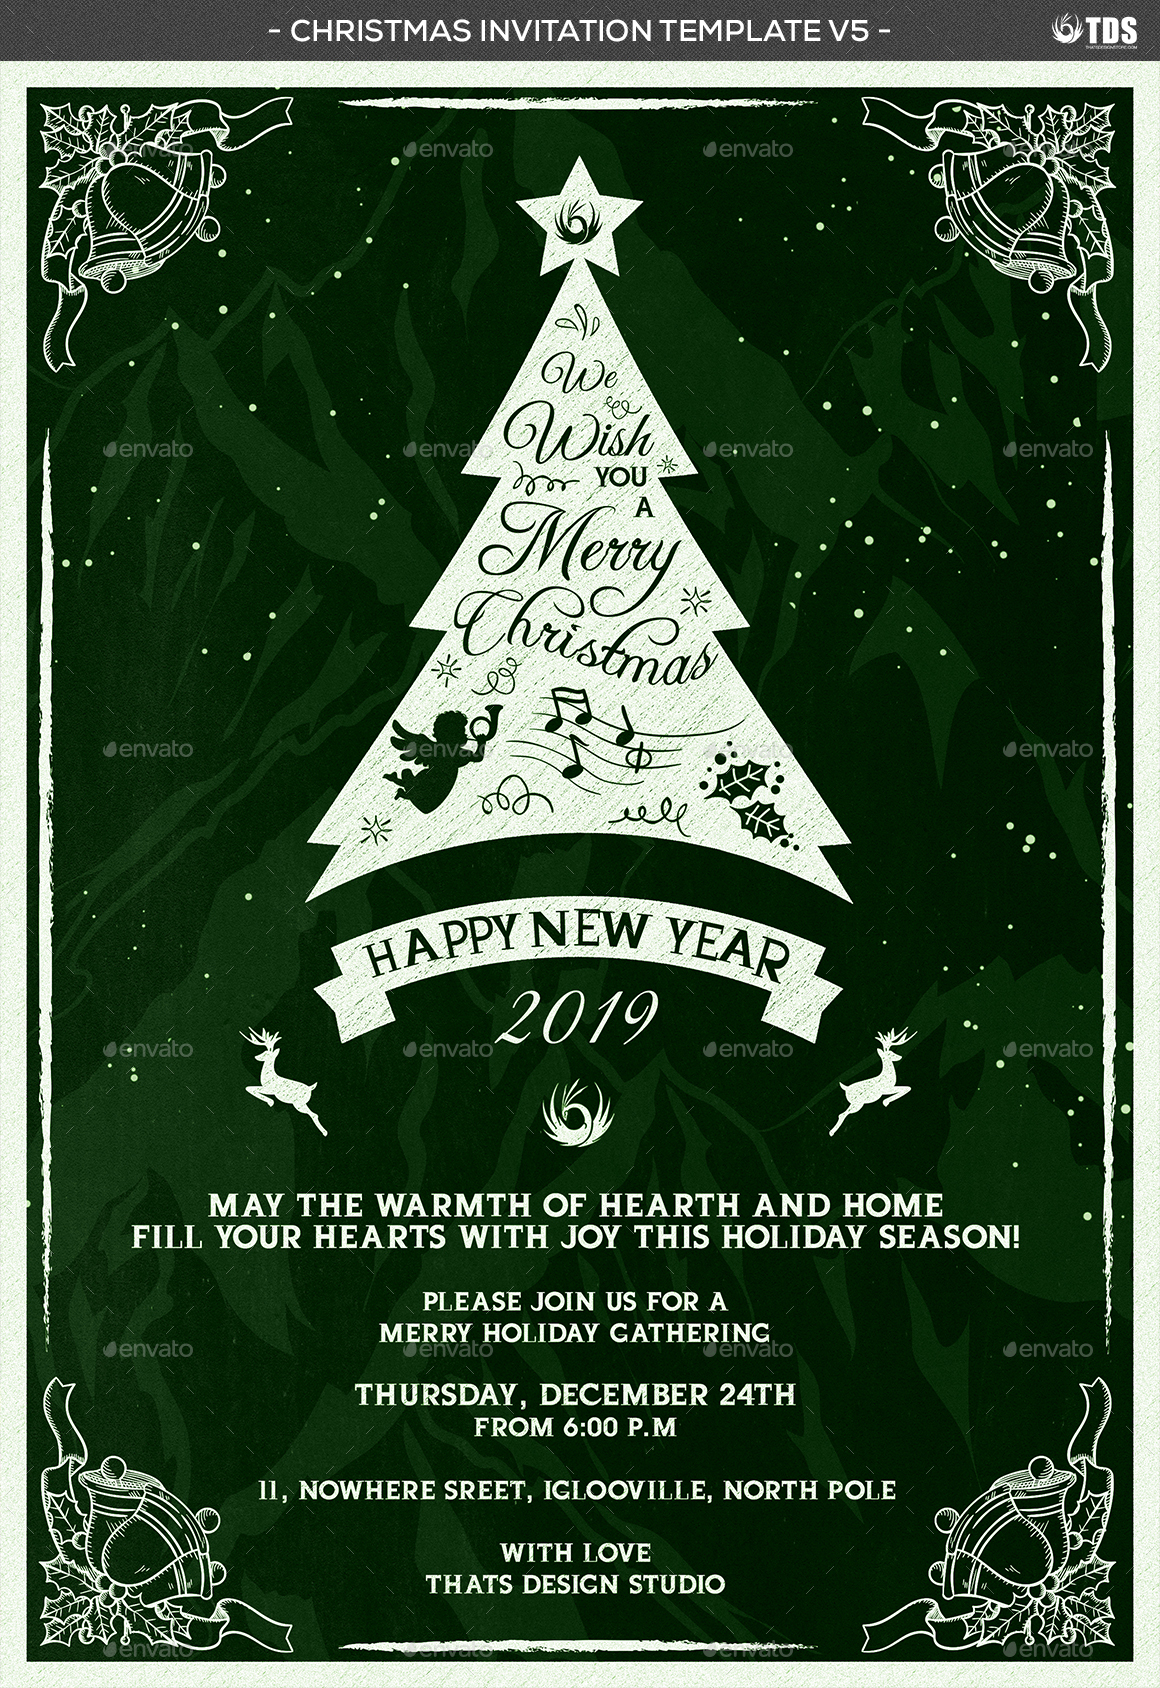 christmas invitation template v5 by lou606 graphicriver 01 christmas invitation template v5 jpg 02 christmas invitation template v5 jpg 03 christmas invitation template v5 jpg